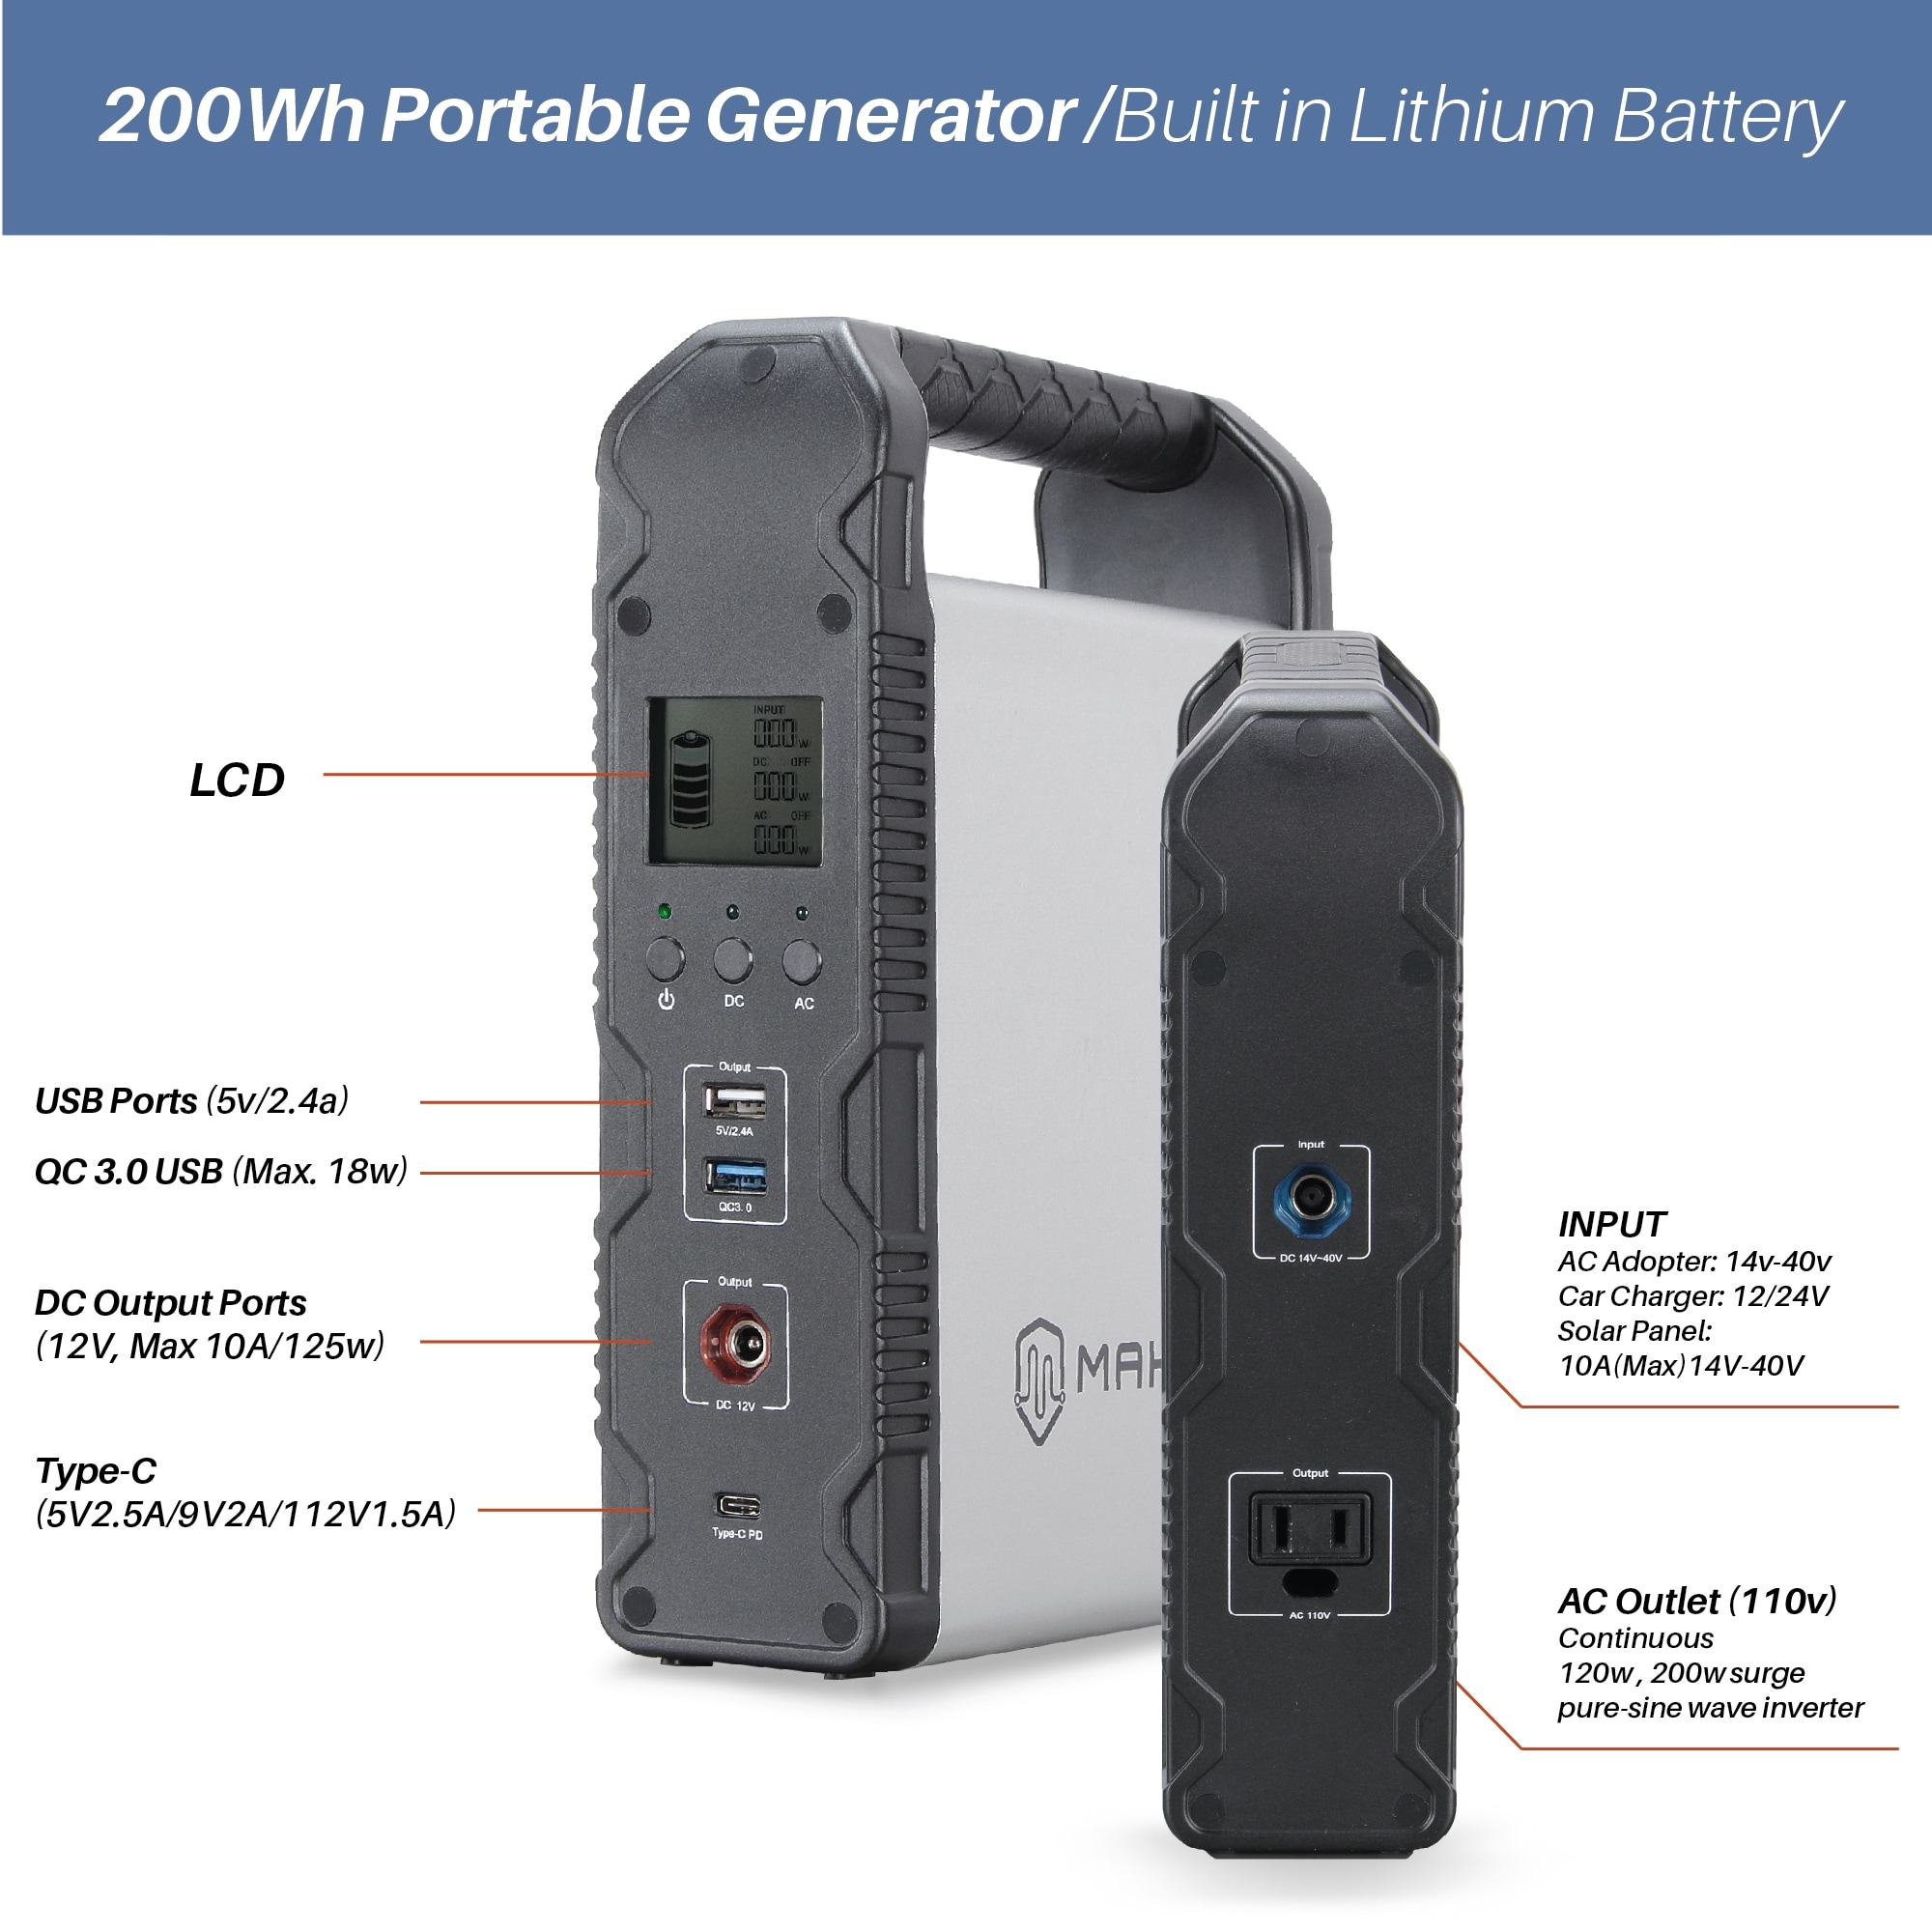 MAKOM 200Wh Portable Power Generator Lithium ion Power Source Power Supply  with 12V Car, DC/AC/USB Outputs and Inverter